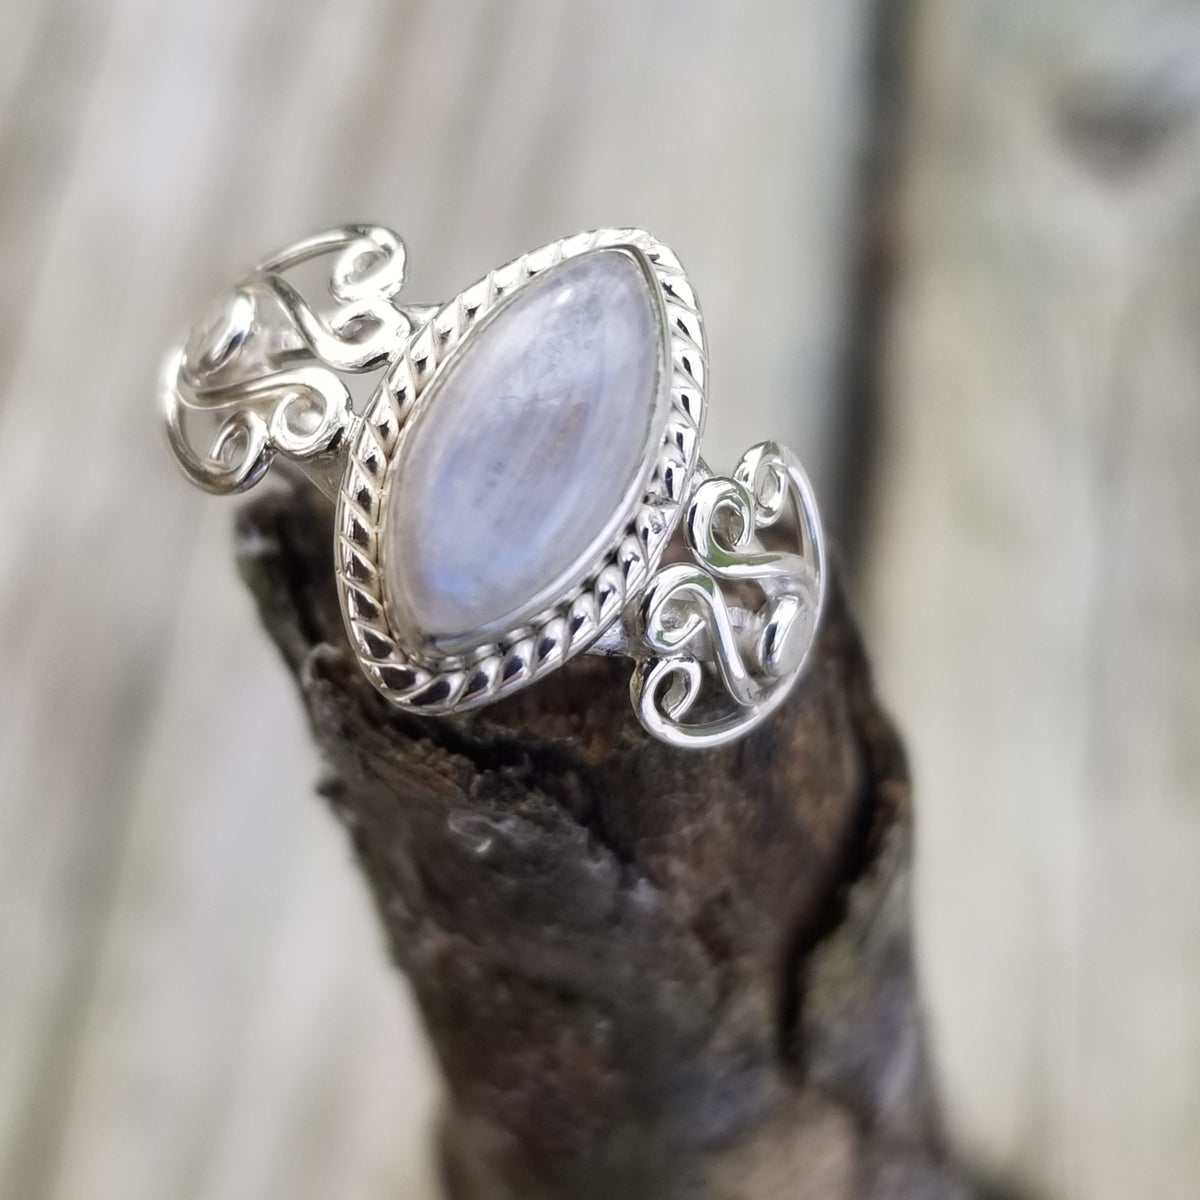 Image of Auria Ring - Moonstone in Sterling